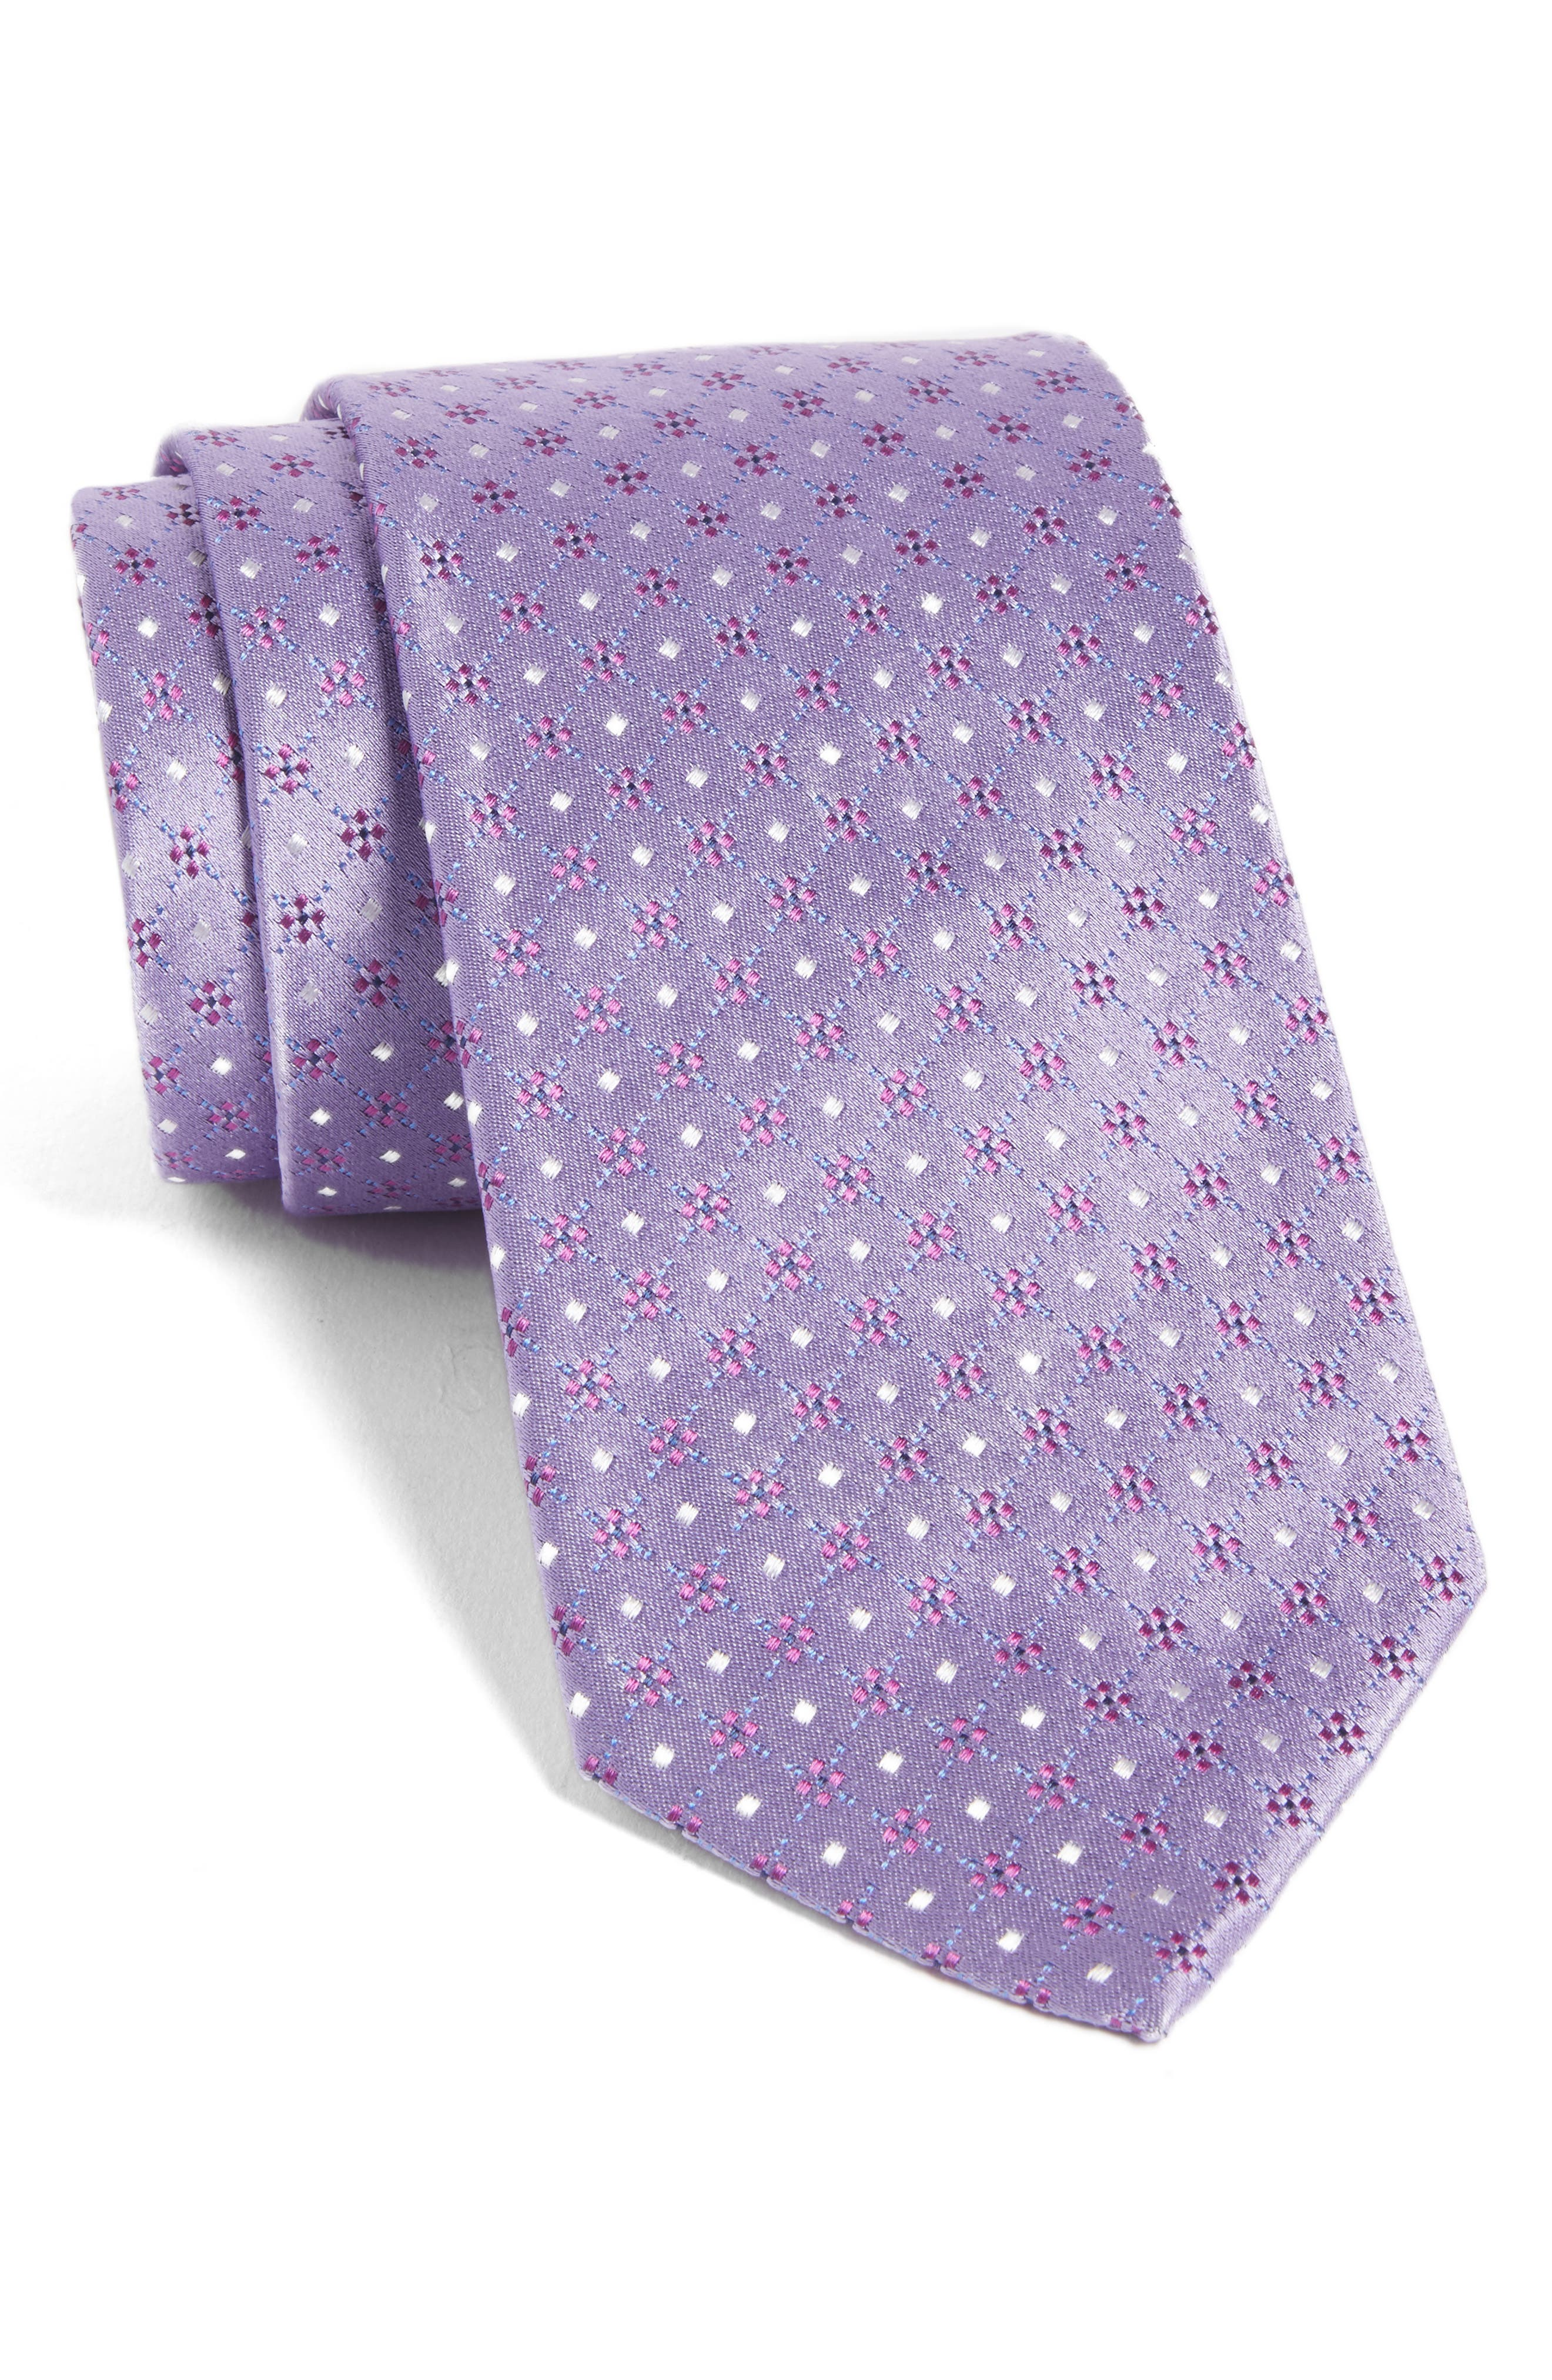 Geometric Silk Tie,                             Main thumbnail 1, color,                             Light Pastel/ Purple